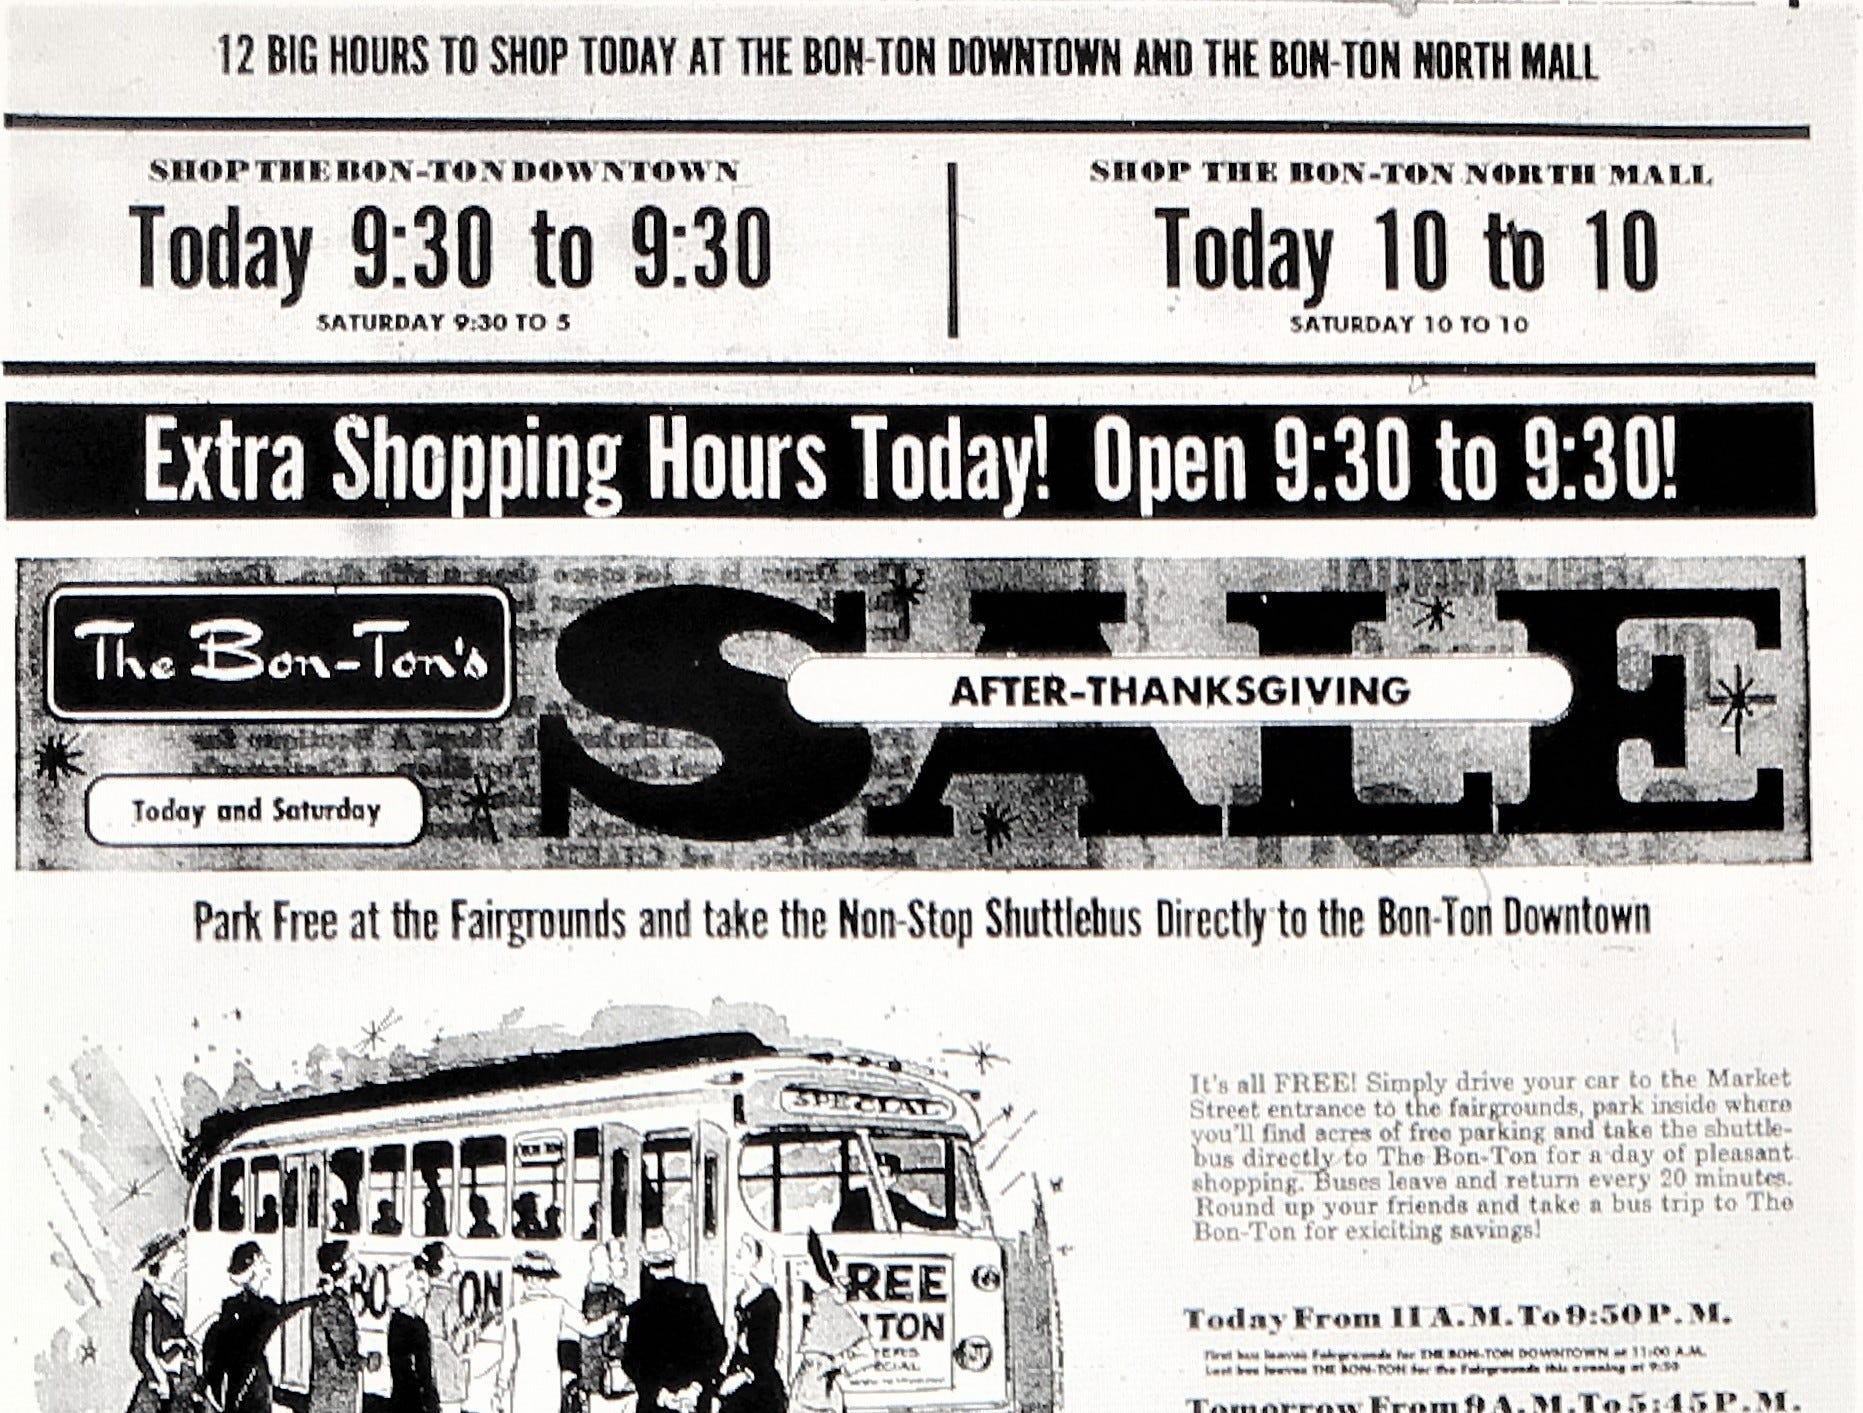 A 1968 advertisement inside an issue of the York Gazette and Daily for an after-Thanksgiving sale at the Bon-Ton in the North Mall. A number of Bon-Ton stores closed this year including the department store's York Galleria location in August 2018.